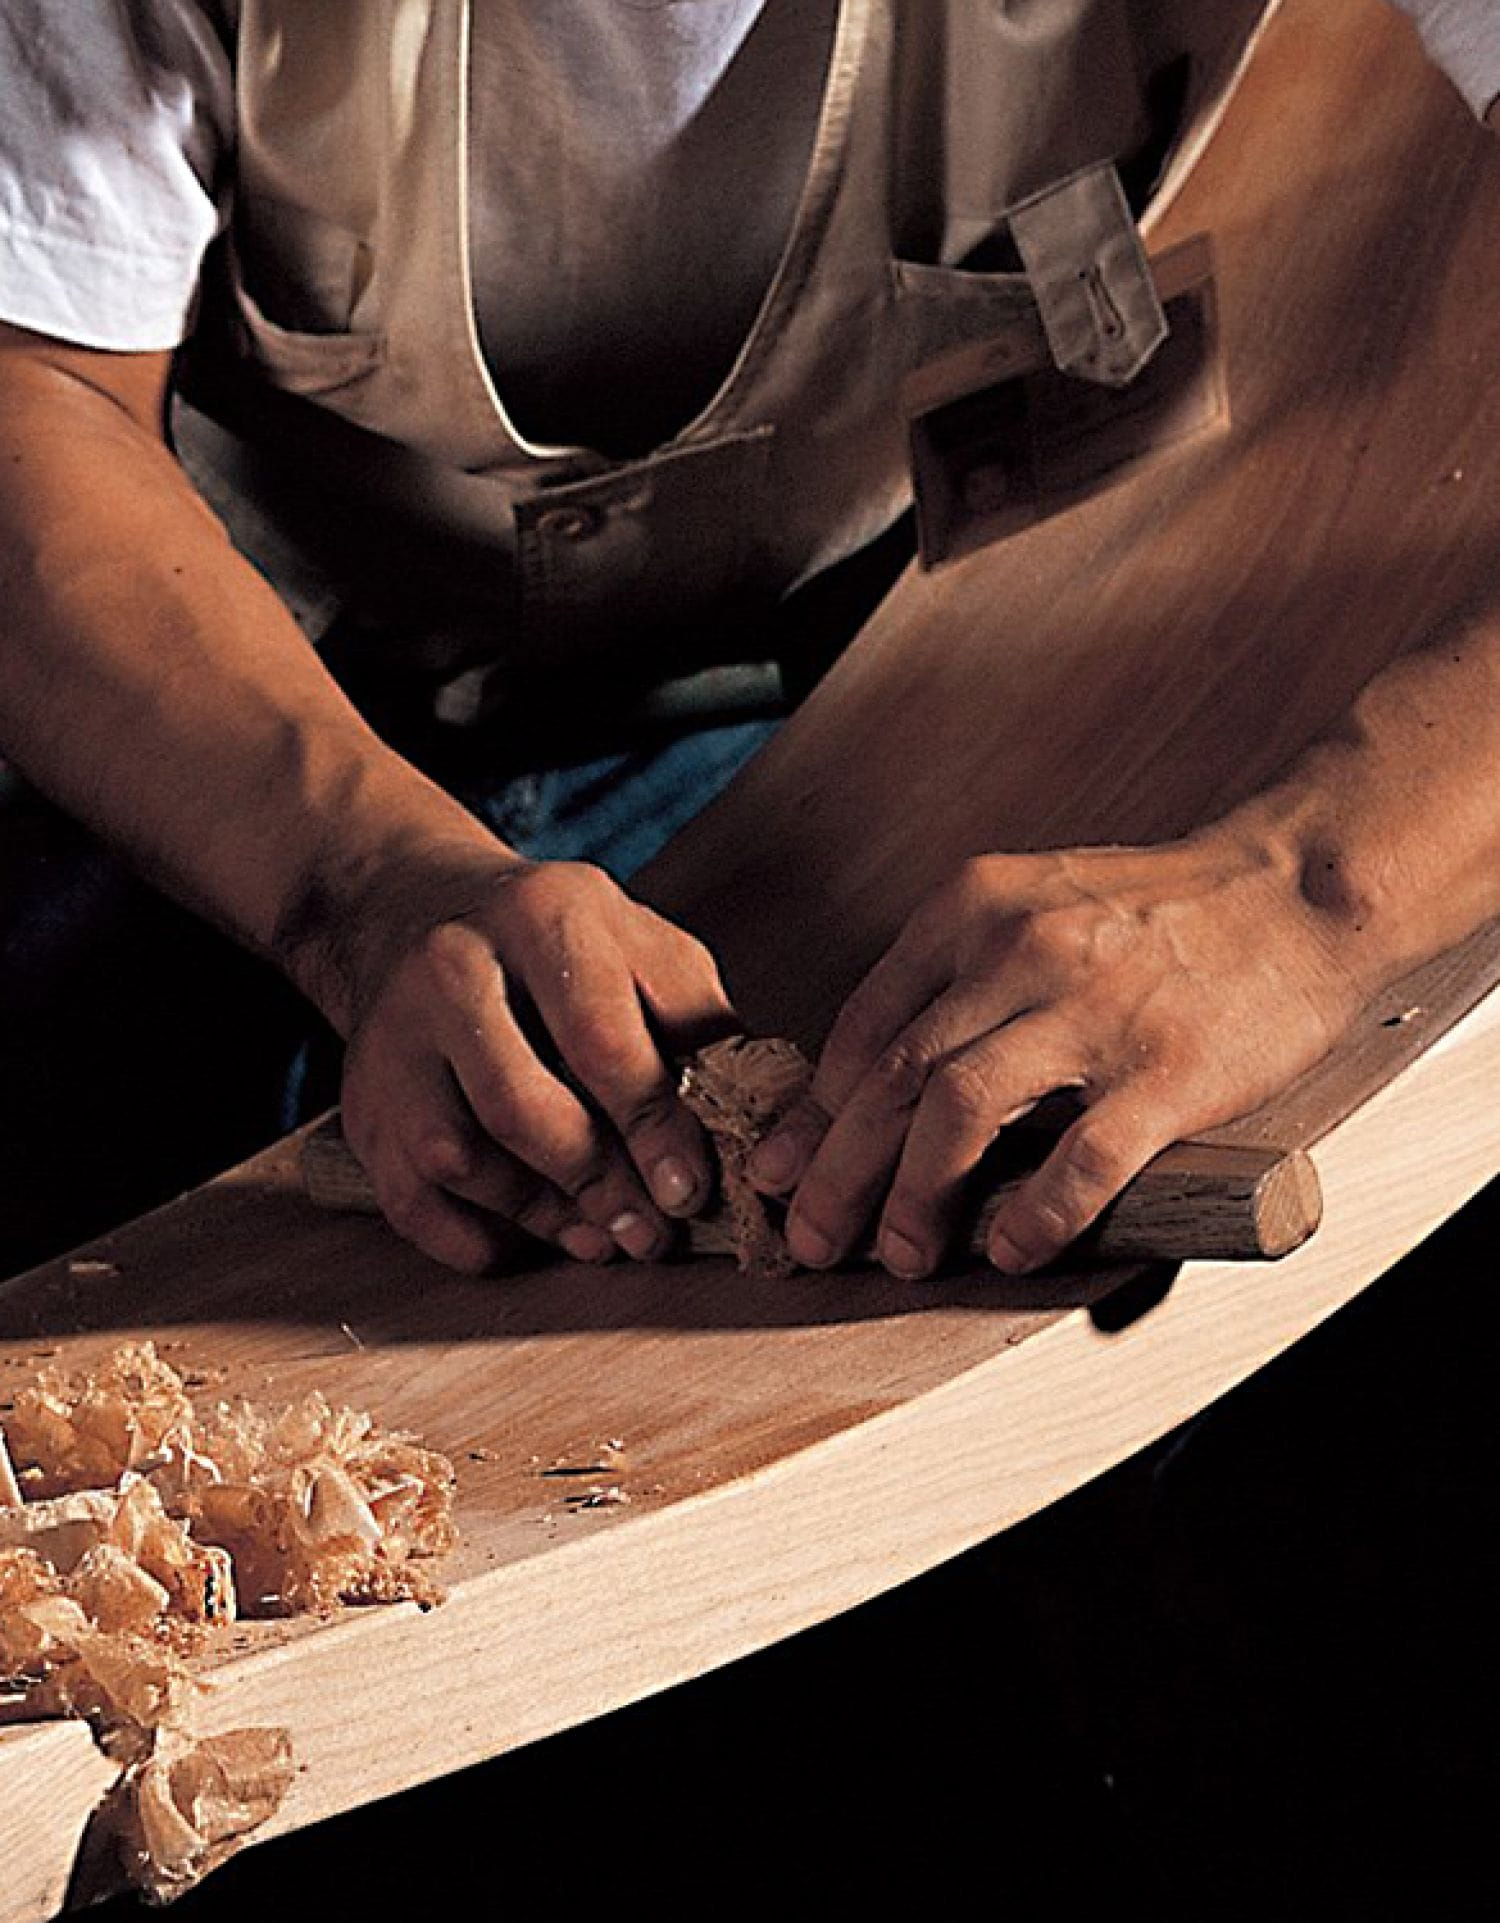 A craftsman's hands as he hand planes the wood for the edge.